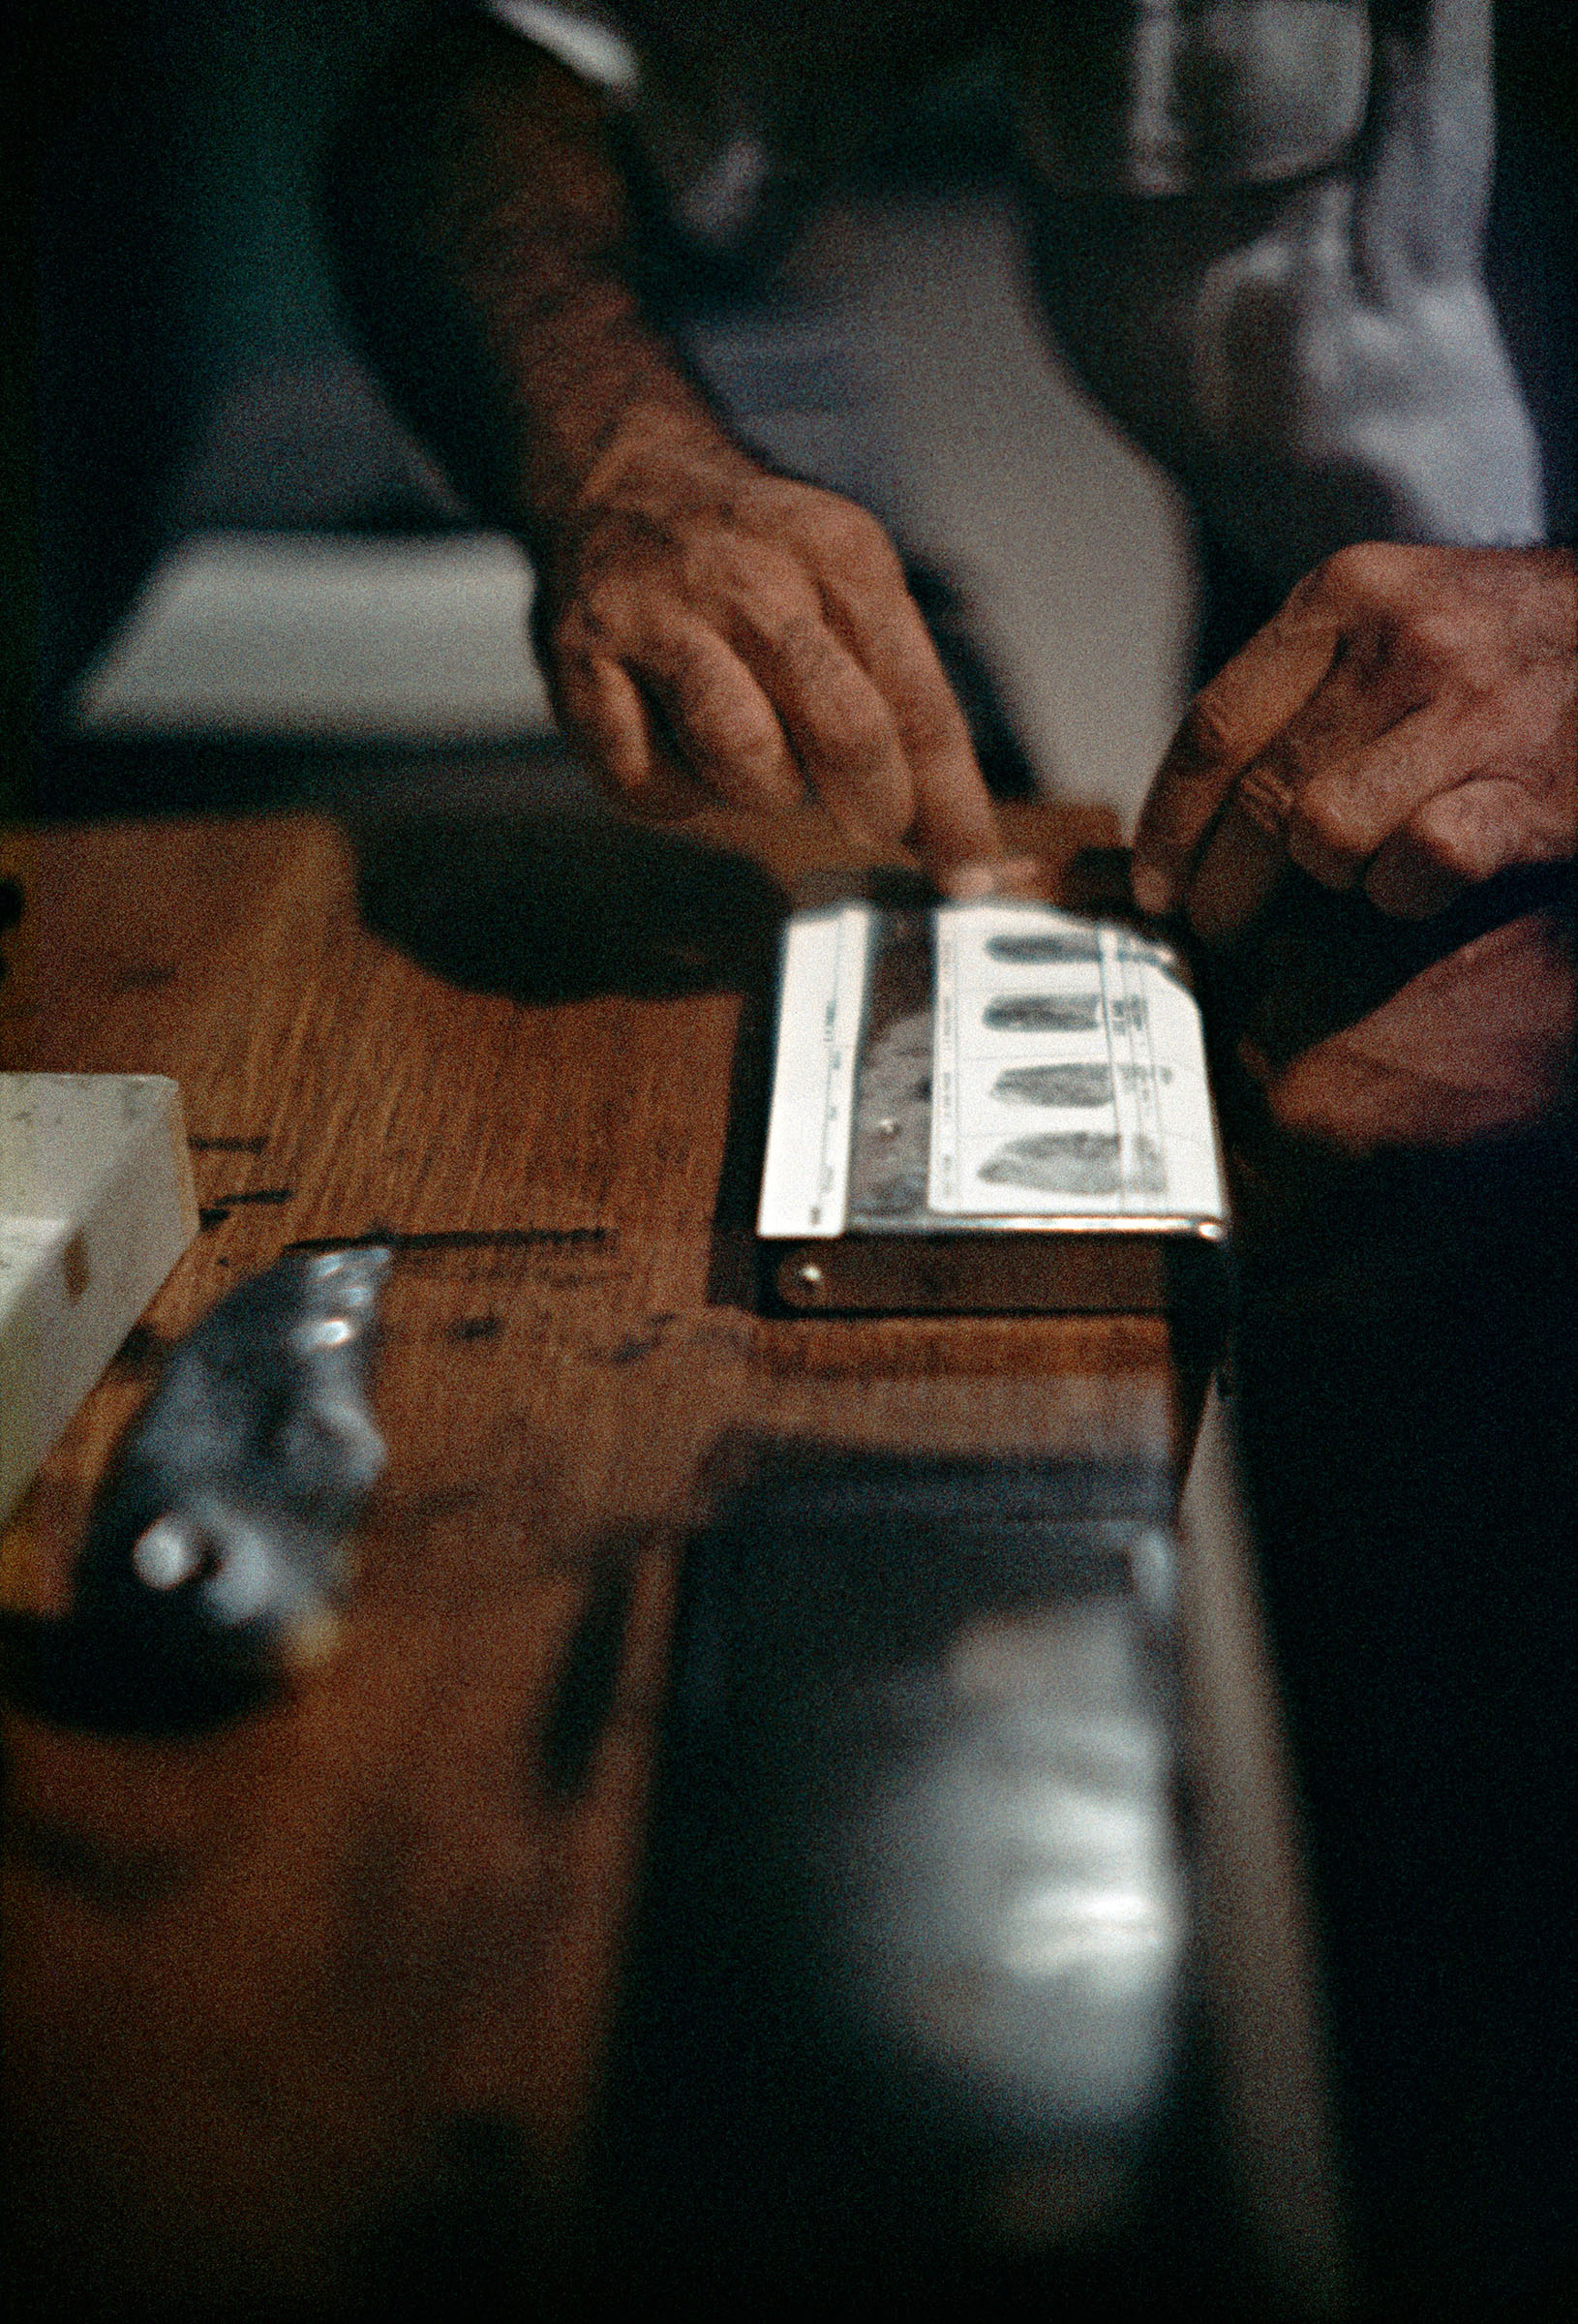 Fingerprinting Addicts for Forging Prescriptions, Chicago, Illinois, 1957